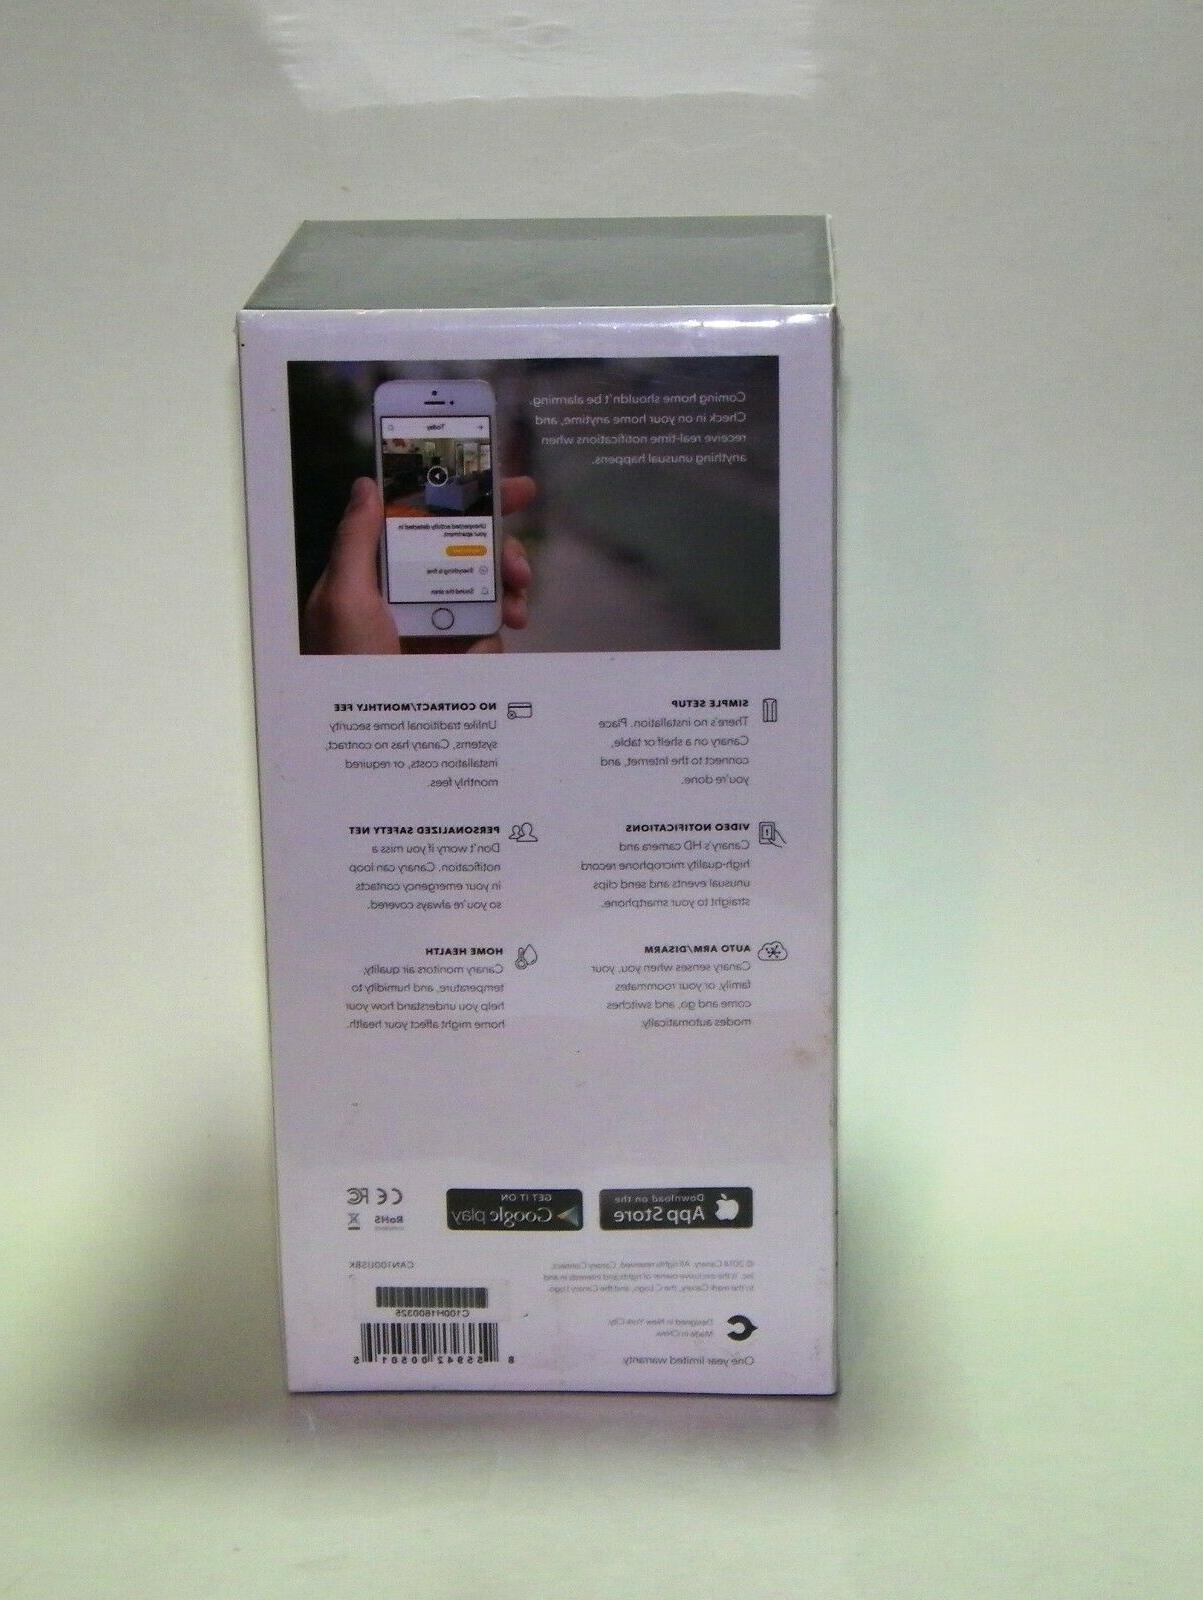 CANARY Smart Security System New